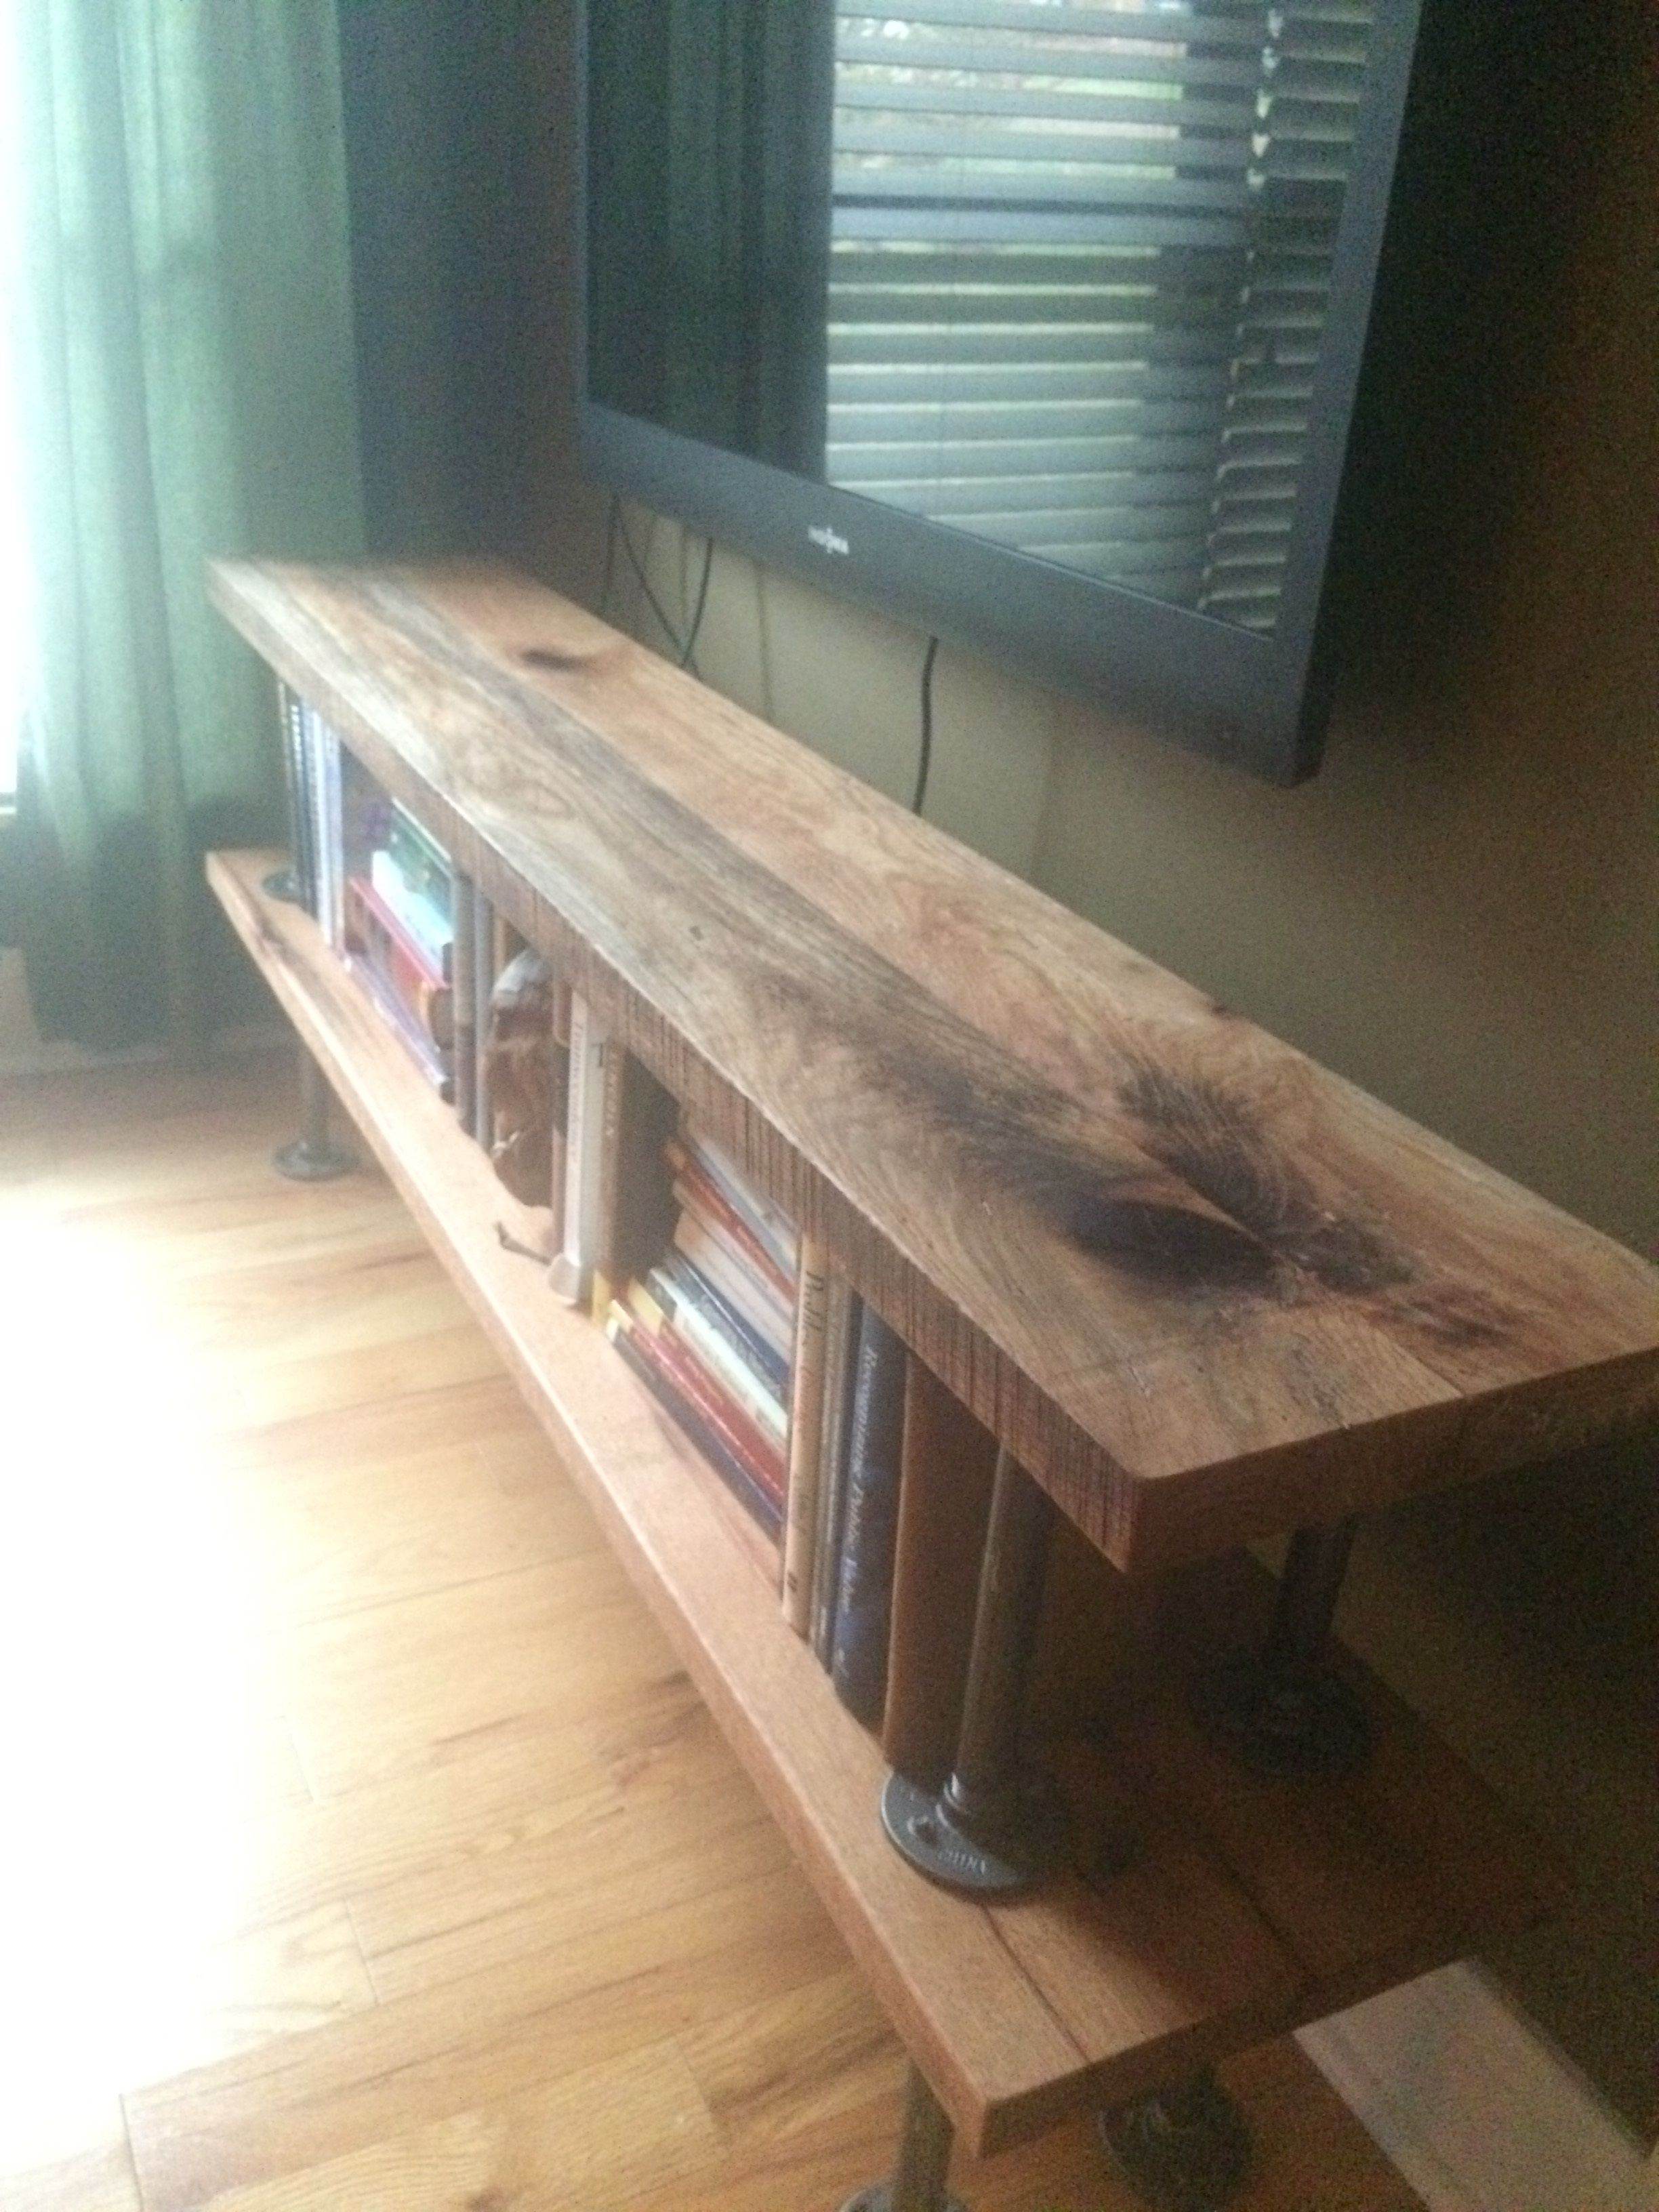 Used very ole barn wood and black pipes...planed down and